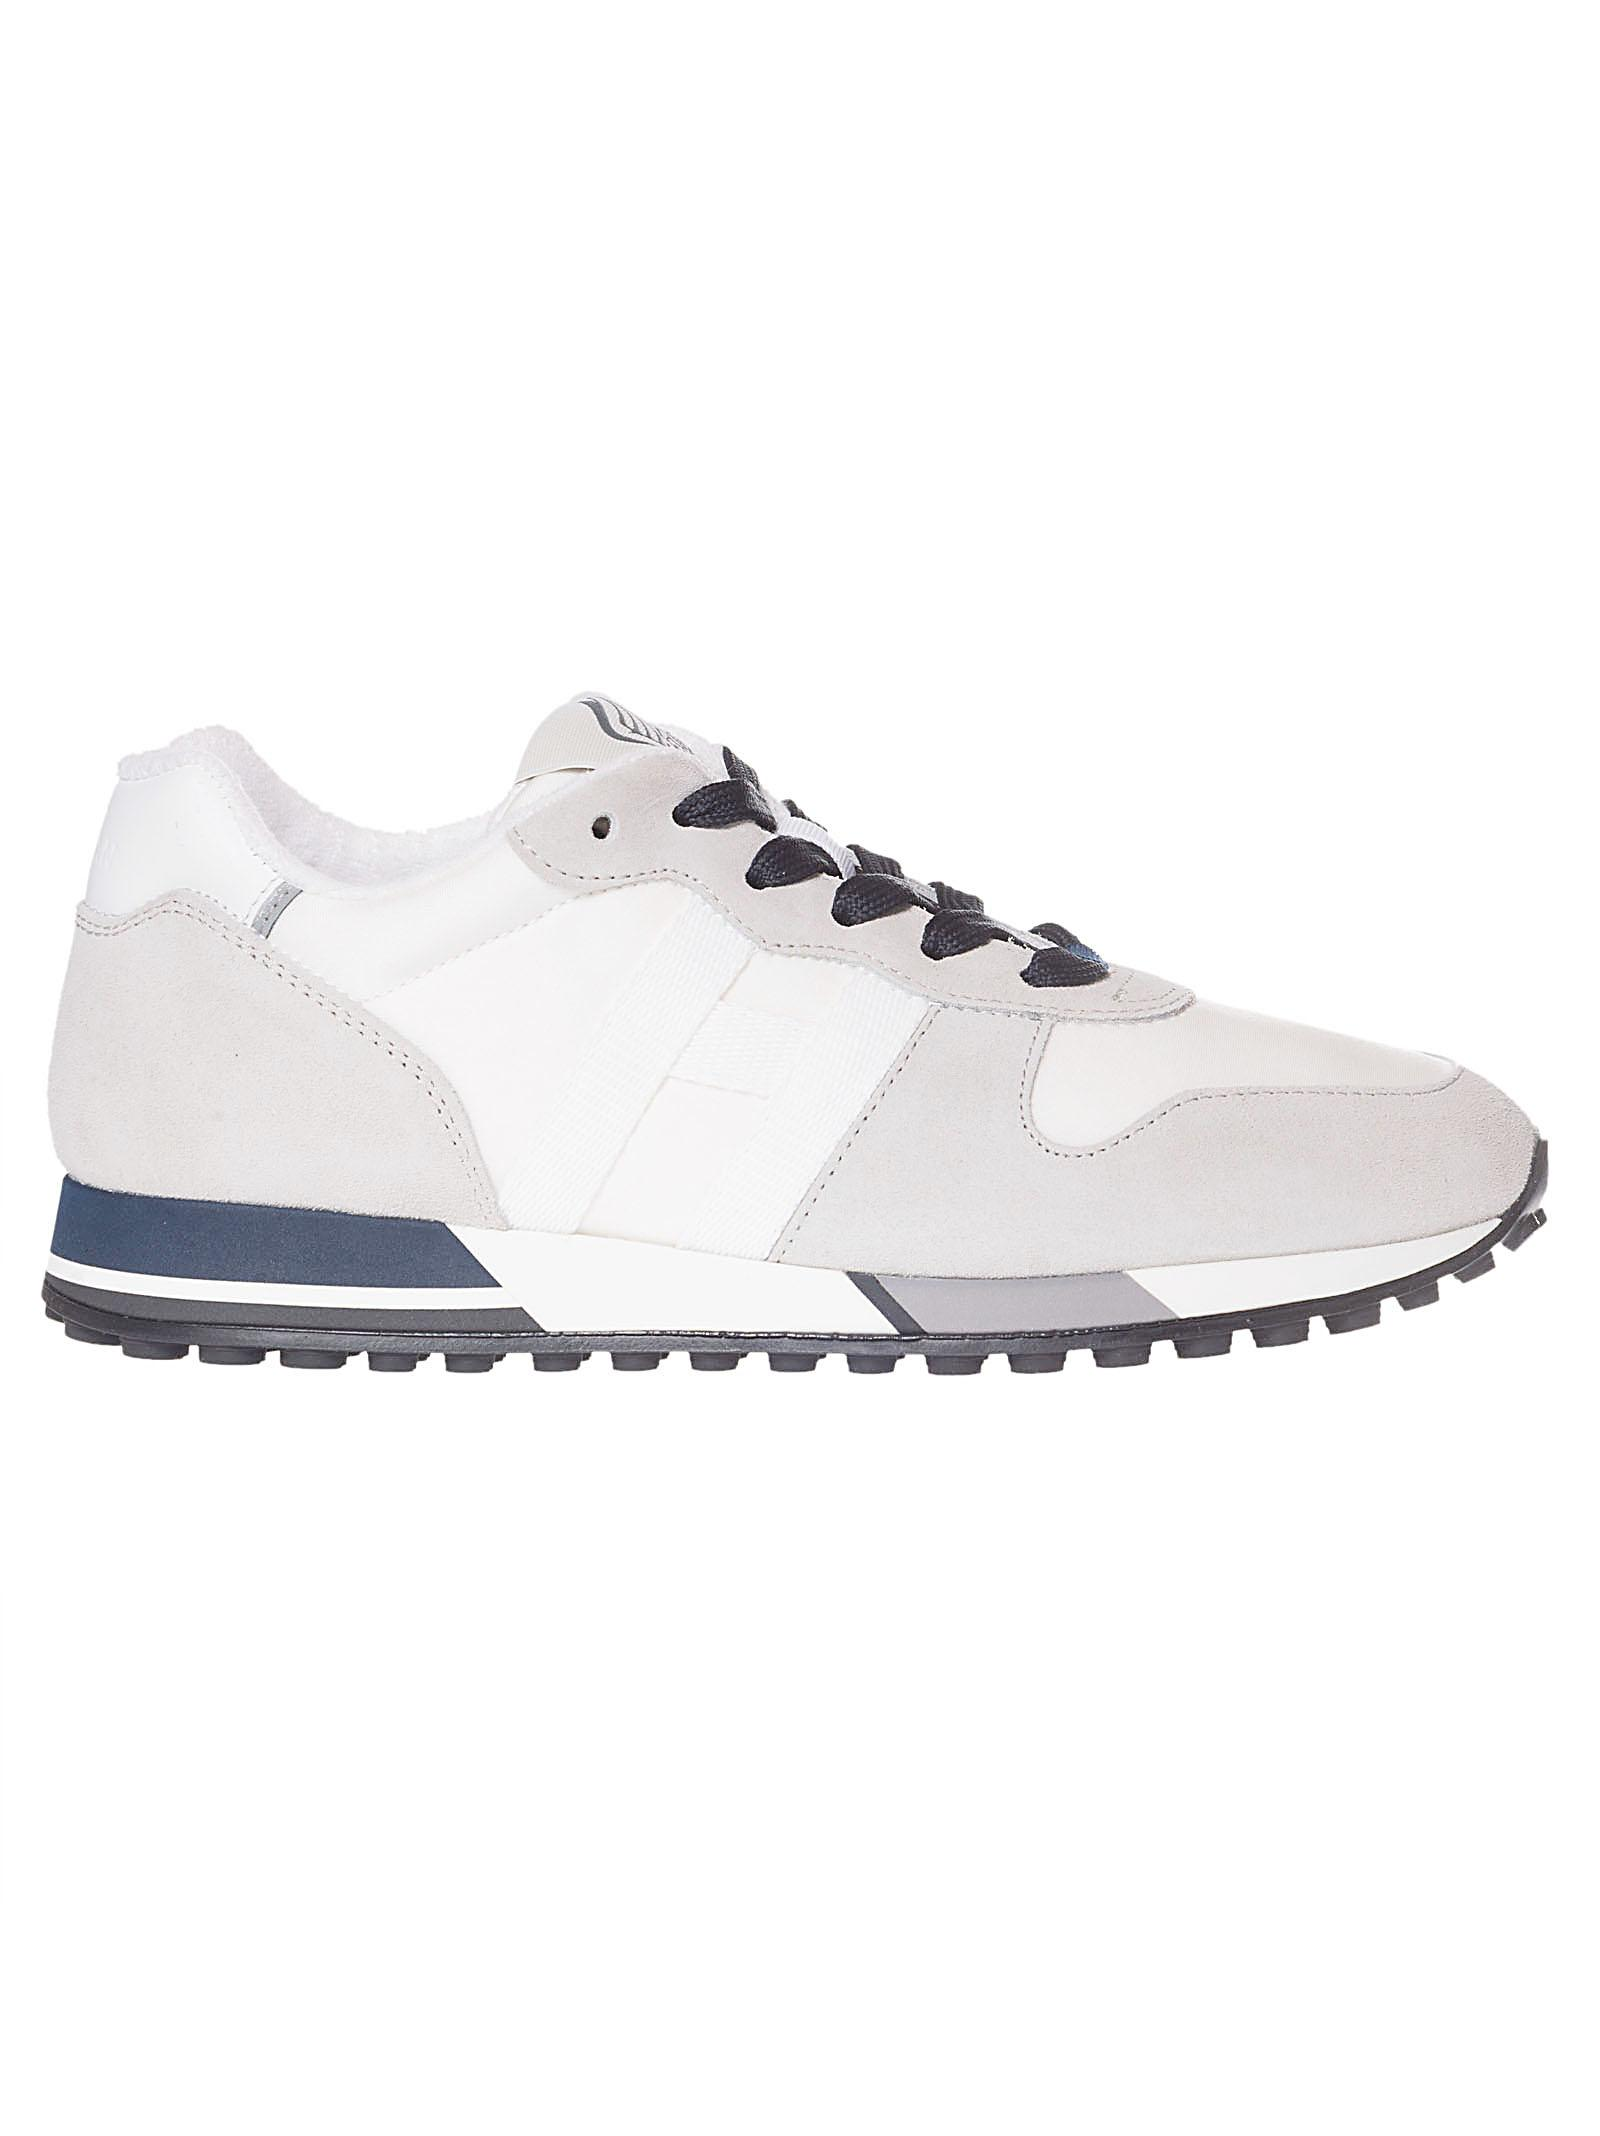 814ddd6c7131 Lyst - Hogan Shoes in White for Men